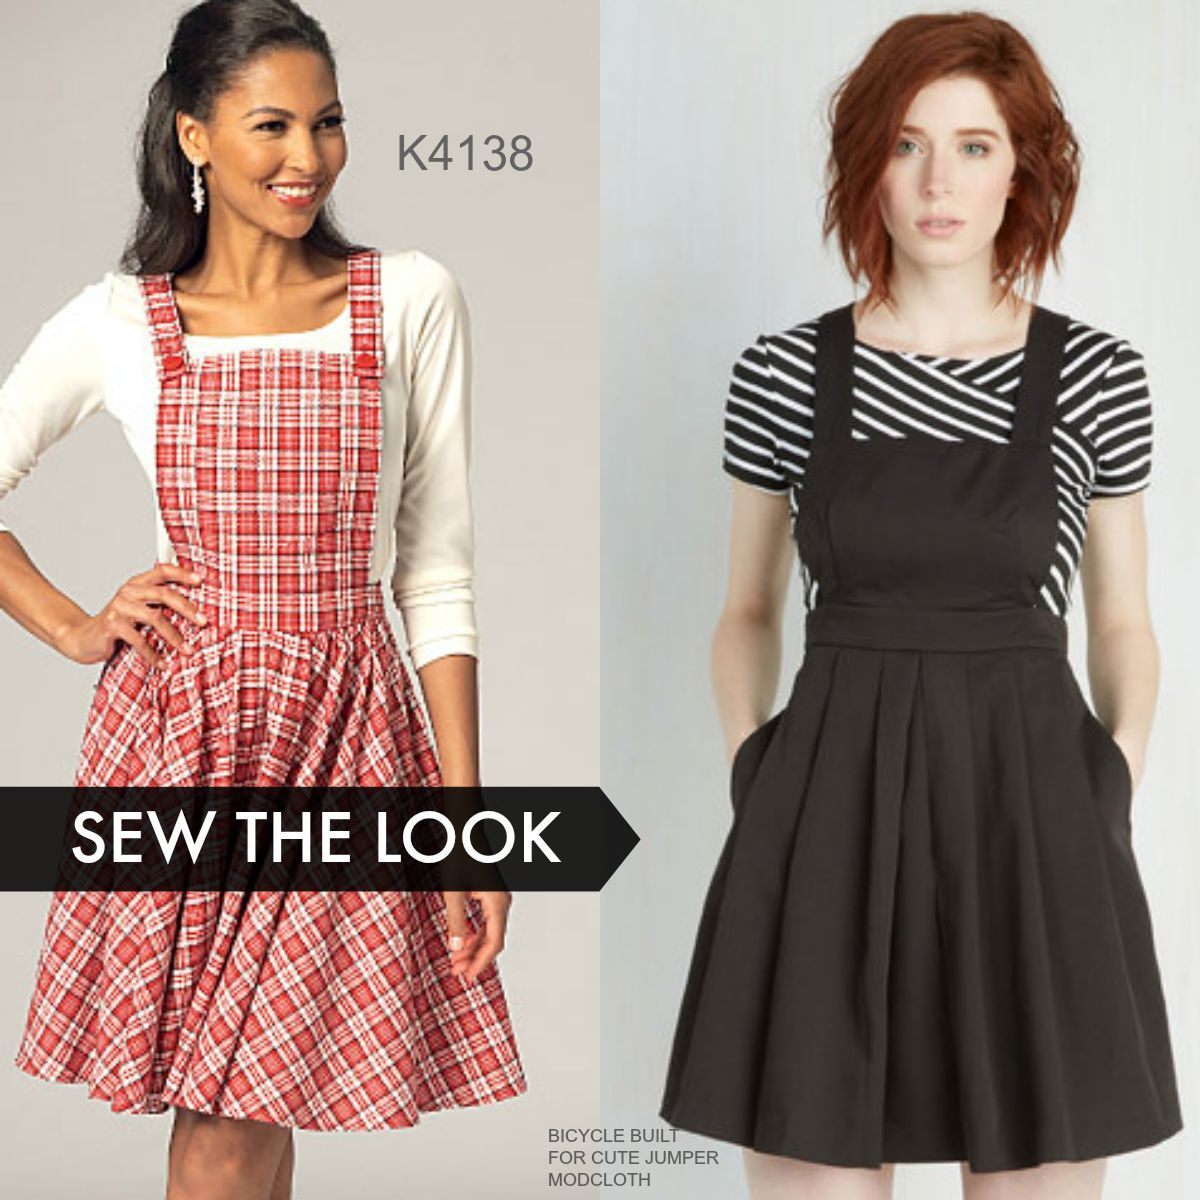 Quick Sew Patterns Sew The Look With Kwik Sew Jumper Sewing Pattern K4138 Make It